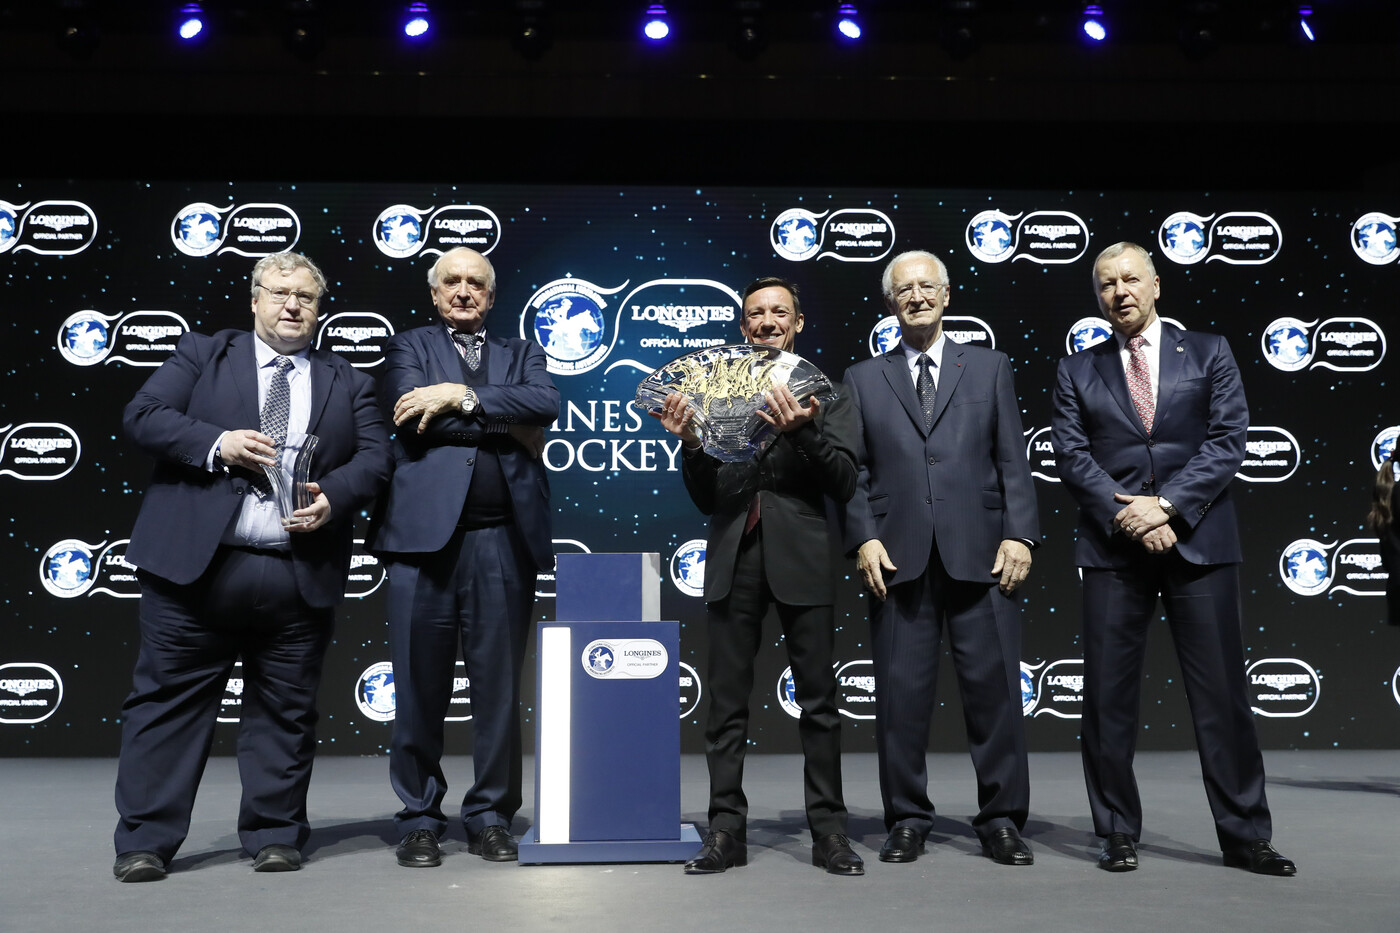 Longines Flat Racing Event: Frankie Dettori Celebrated as the 2019 Longines World's Best Jockey 1